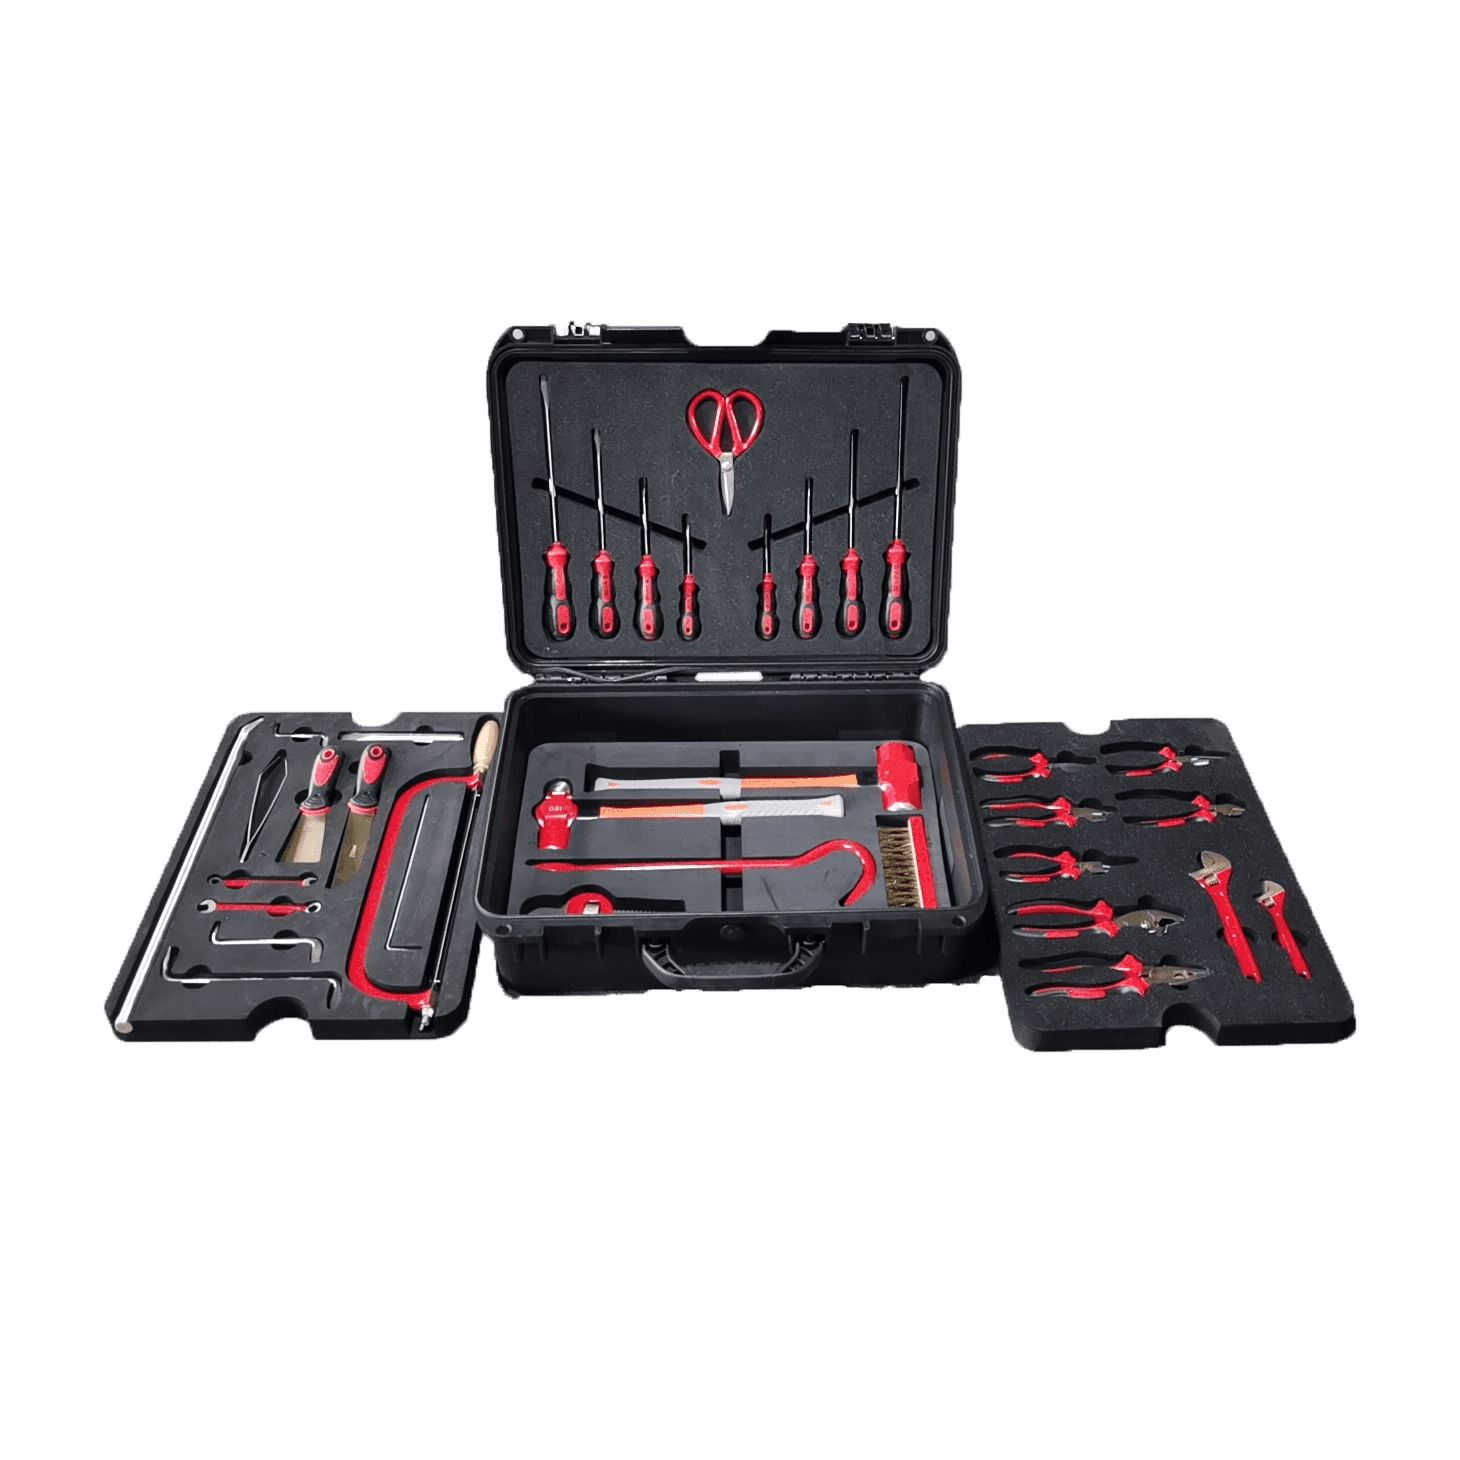 High Quality for Bomb Proof Blanket - 36-Piece Non-Magnetic Tool Kit – Heweiyongtai